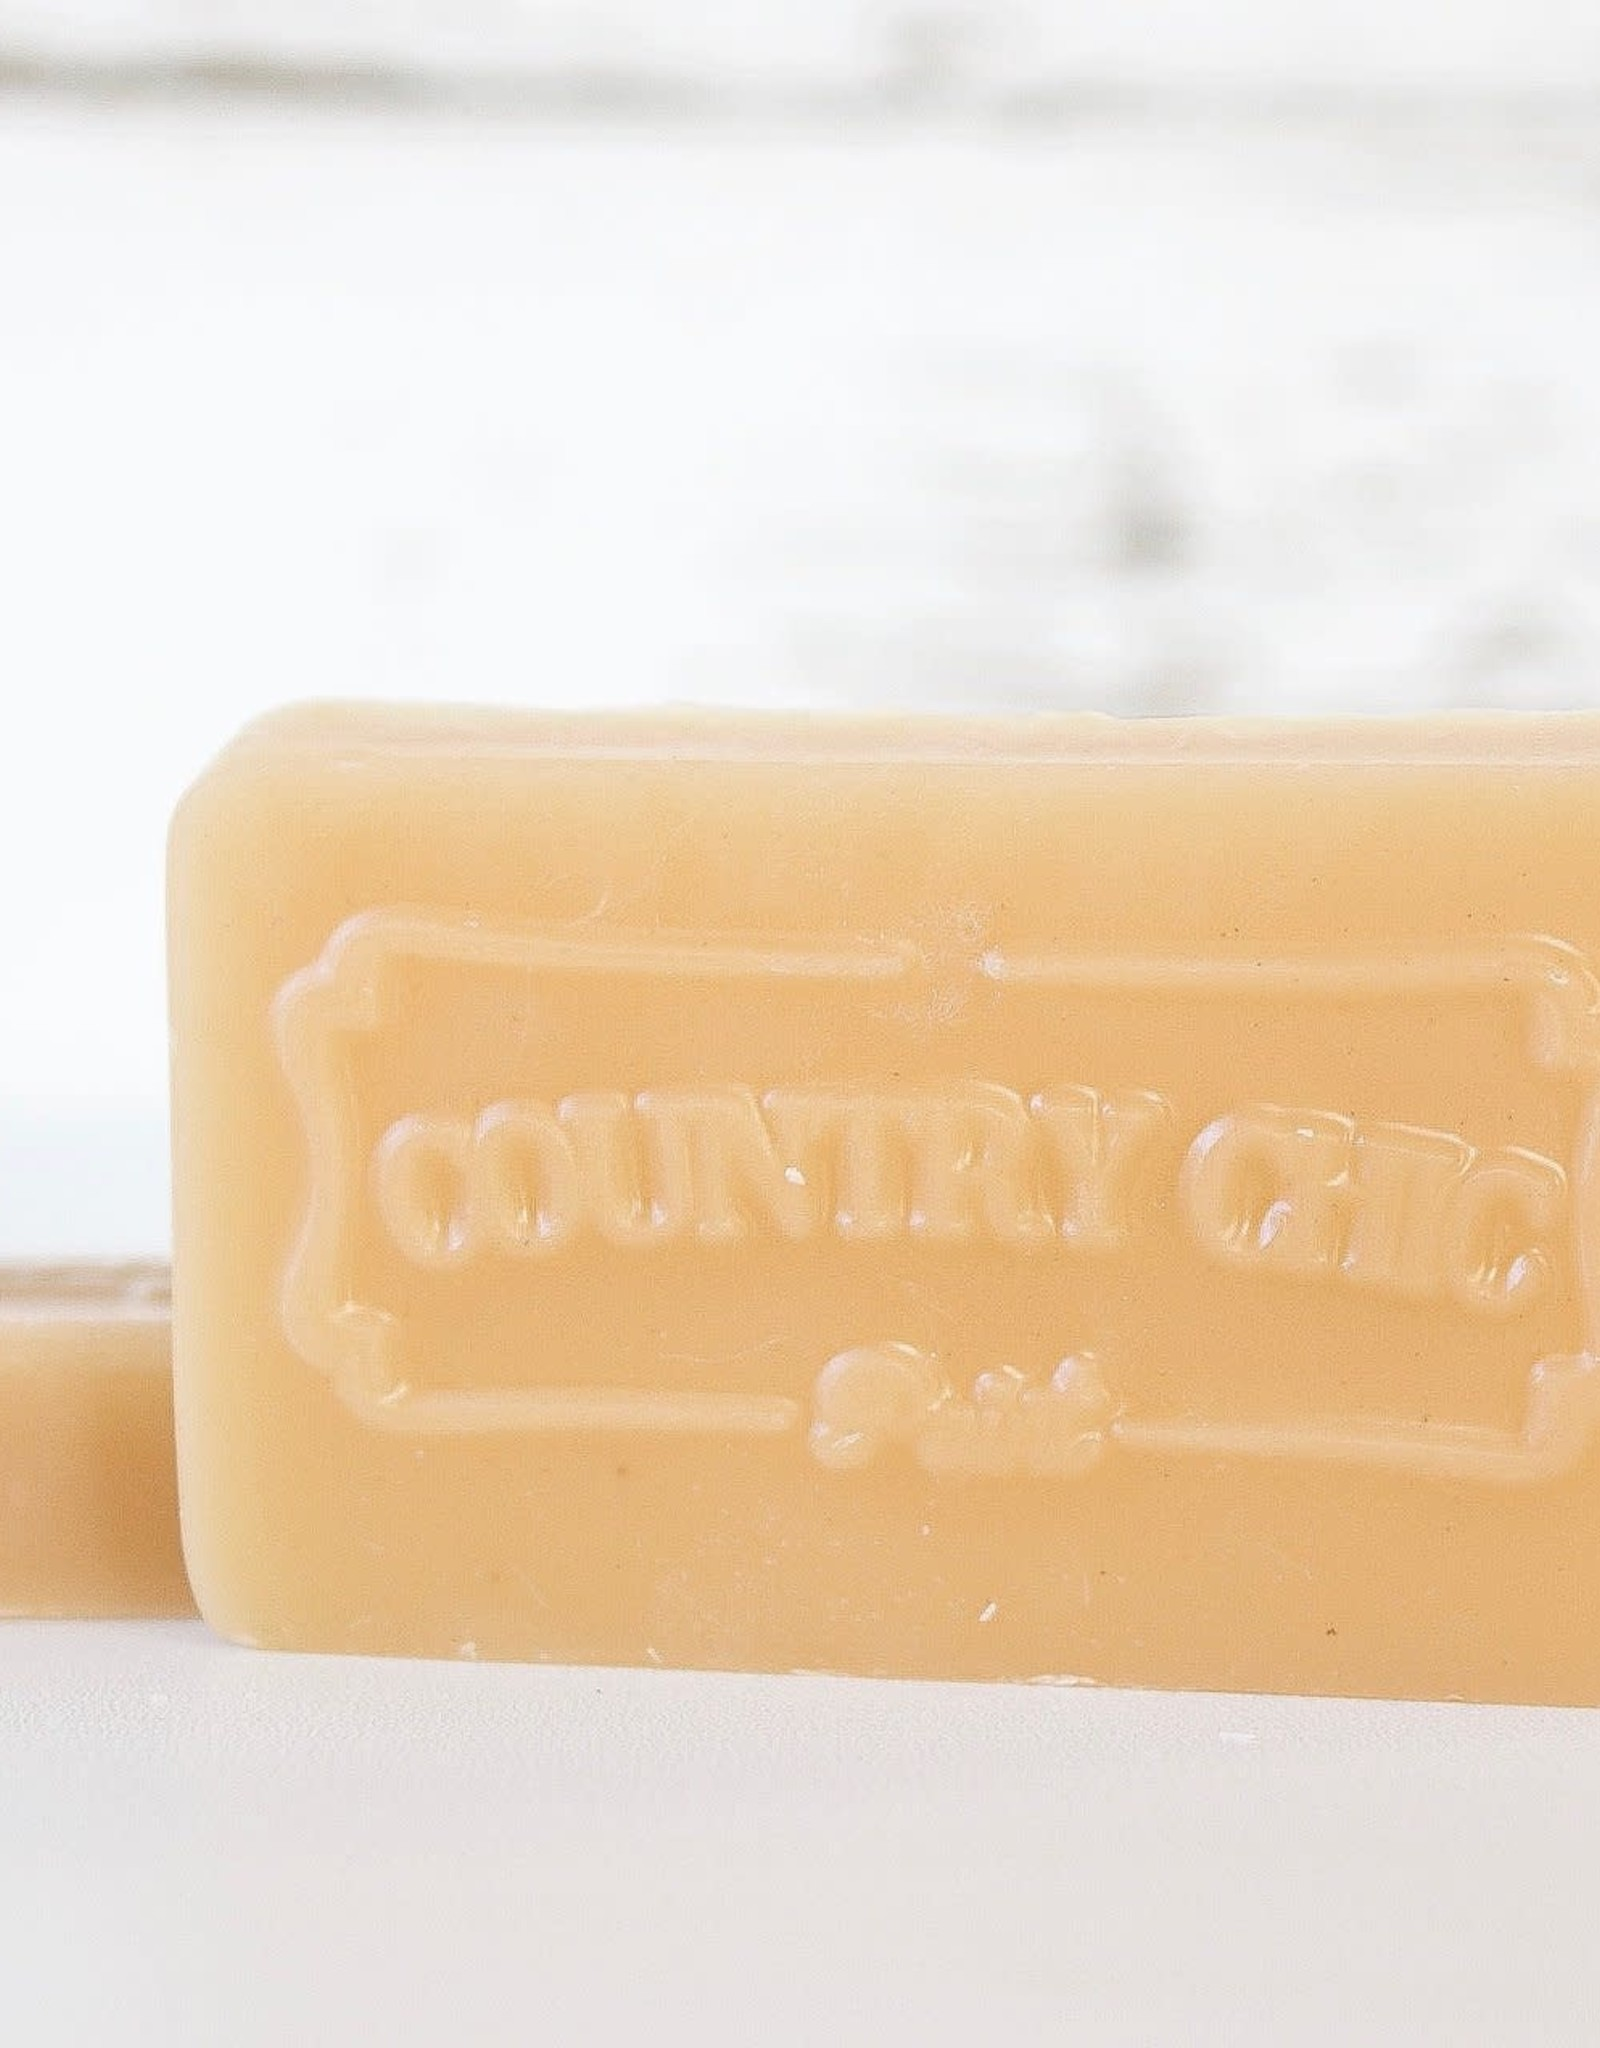 Country Chic Country Chic Beeswax Distressing Bar